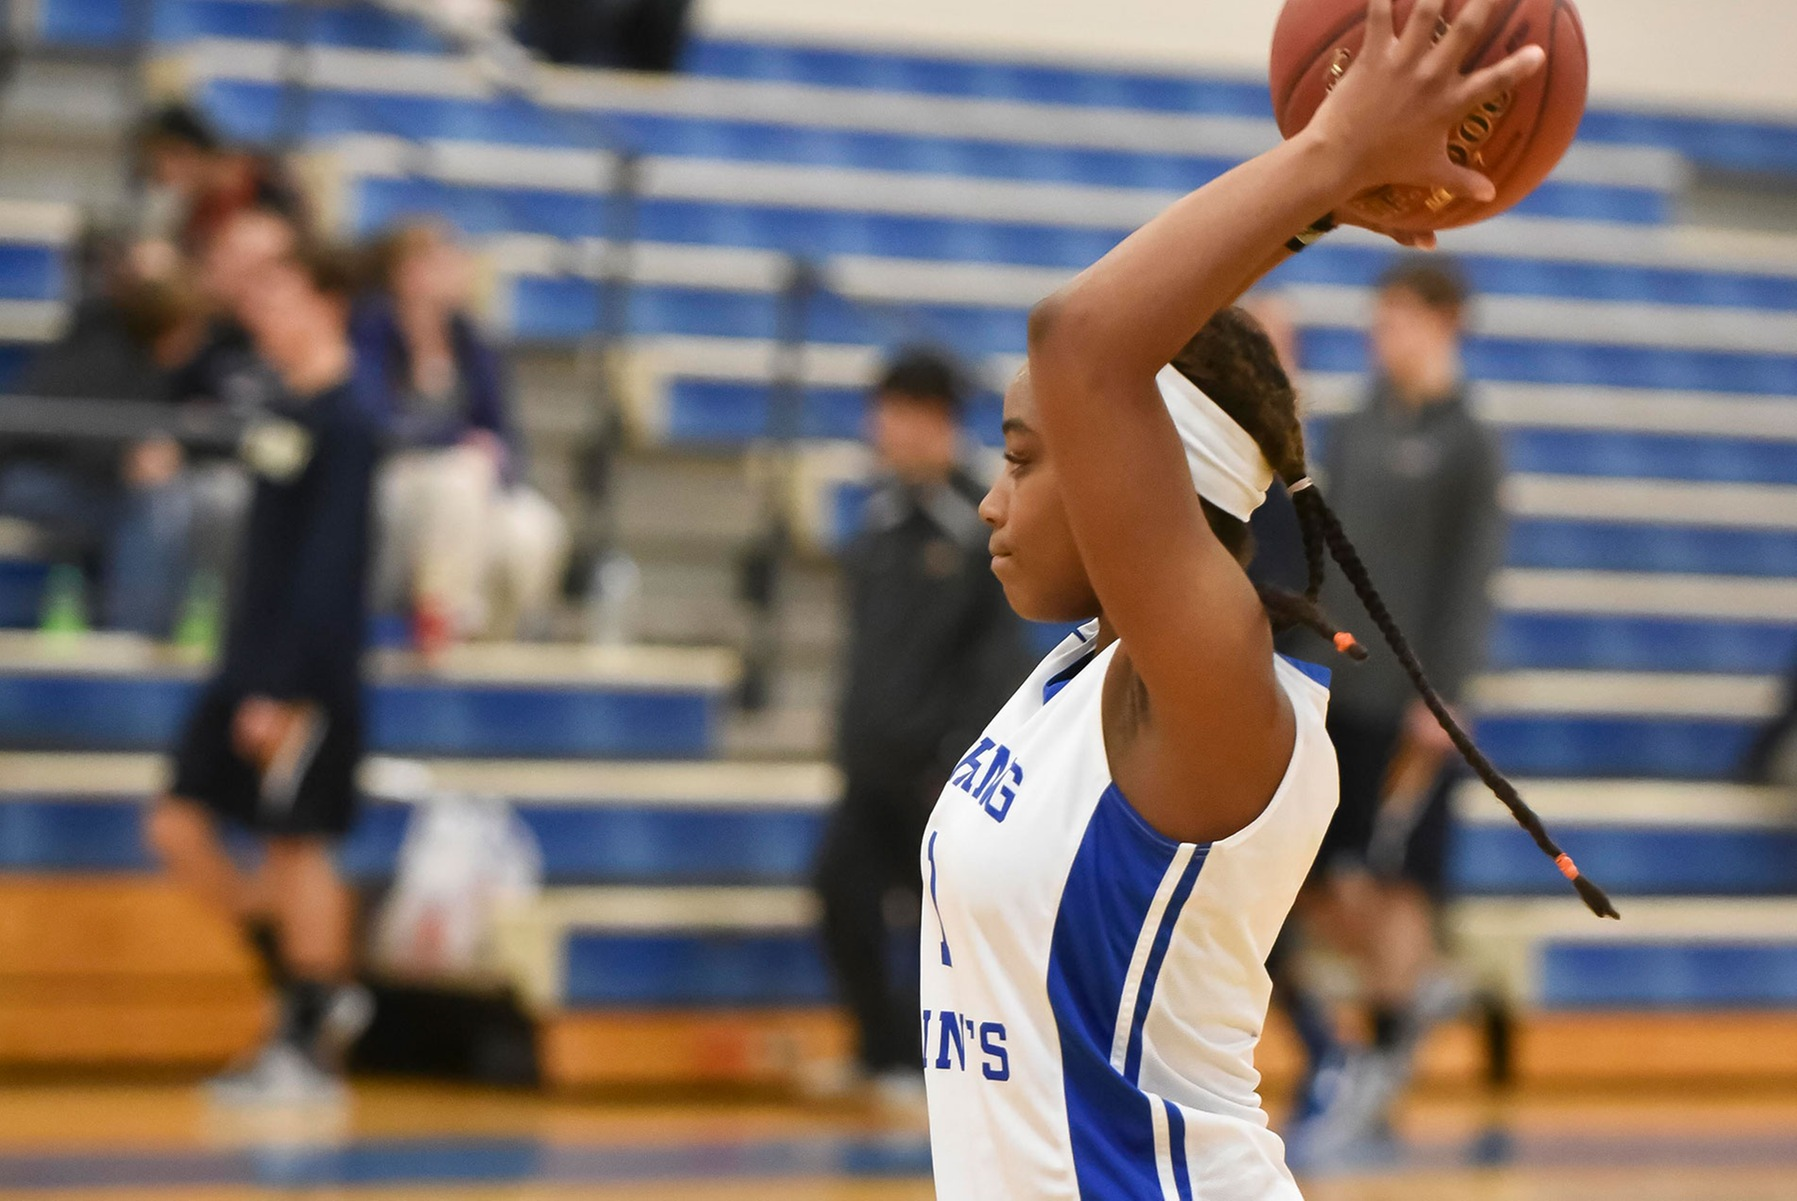 Lady Saints look to race past Broncos